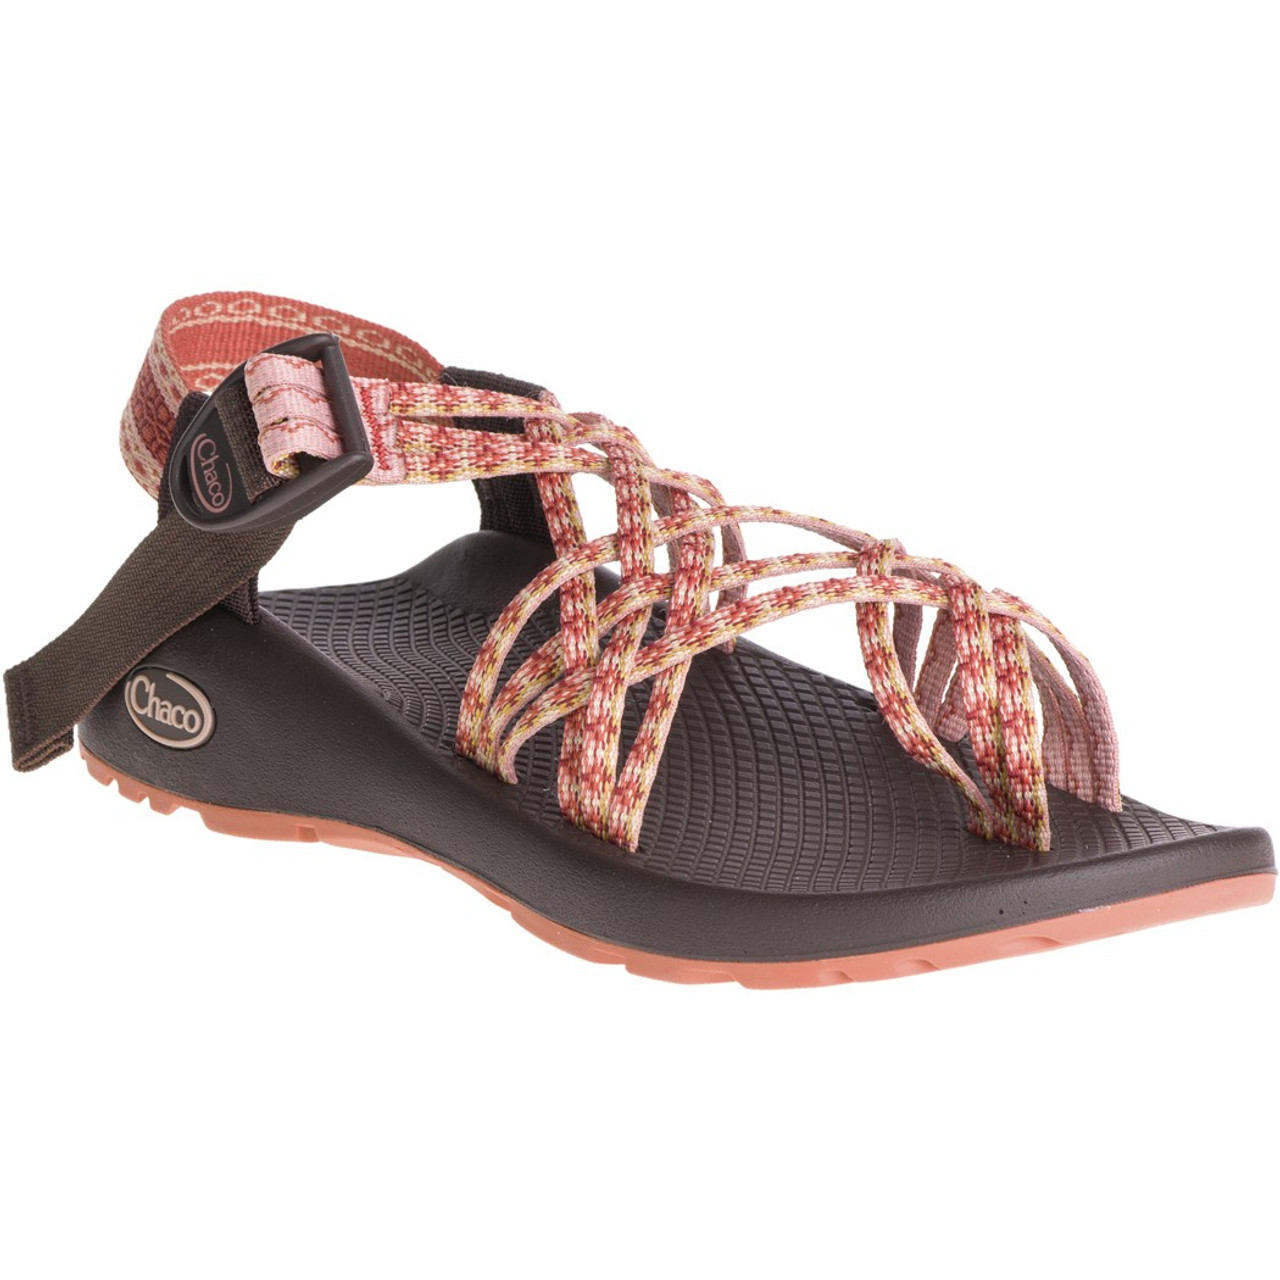 79fa6f004937 Chacos Women s Sandals - ZX 3 Classic - Java Ginger - Surf and Dirt